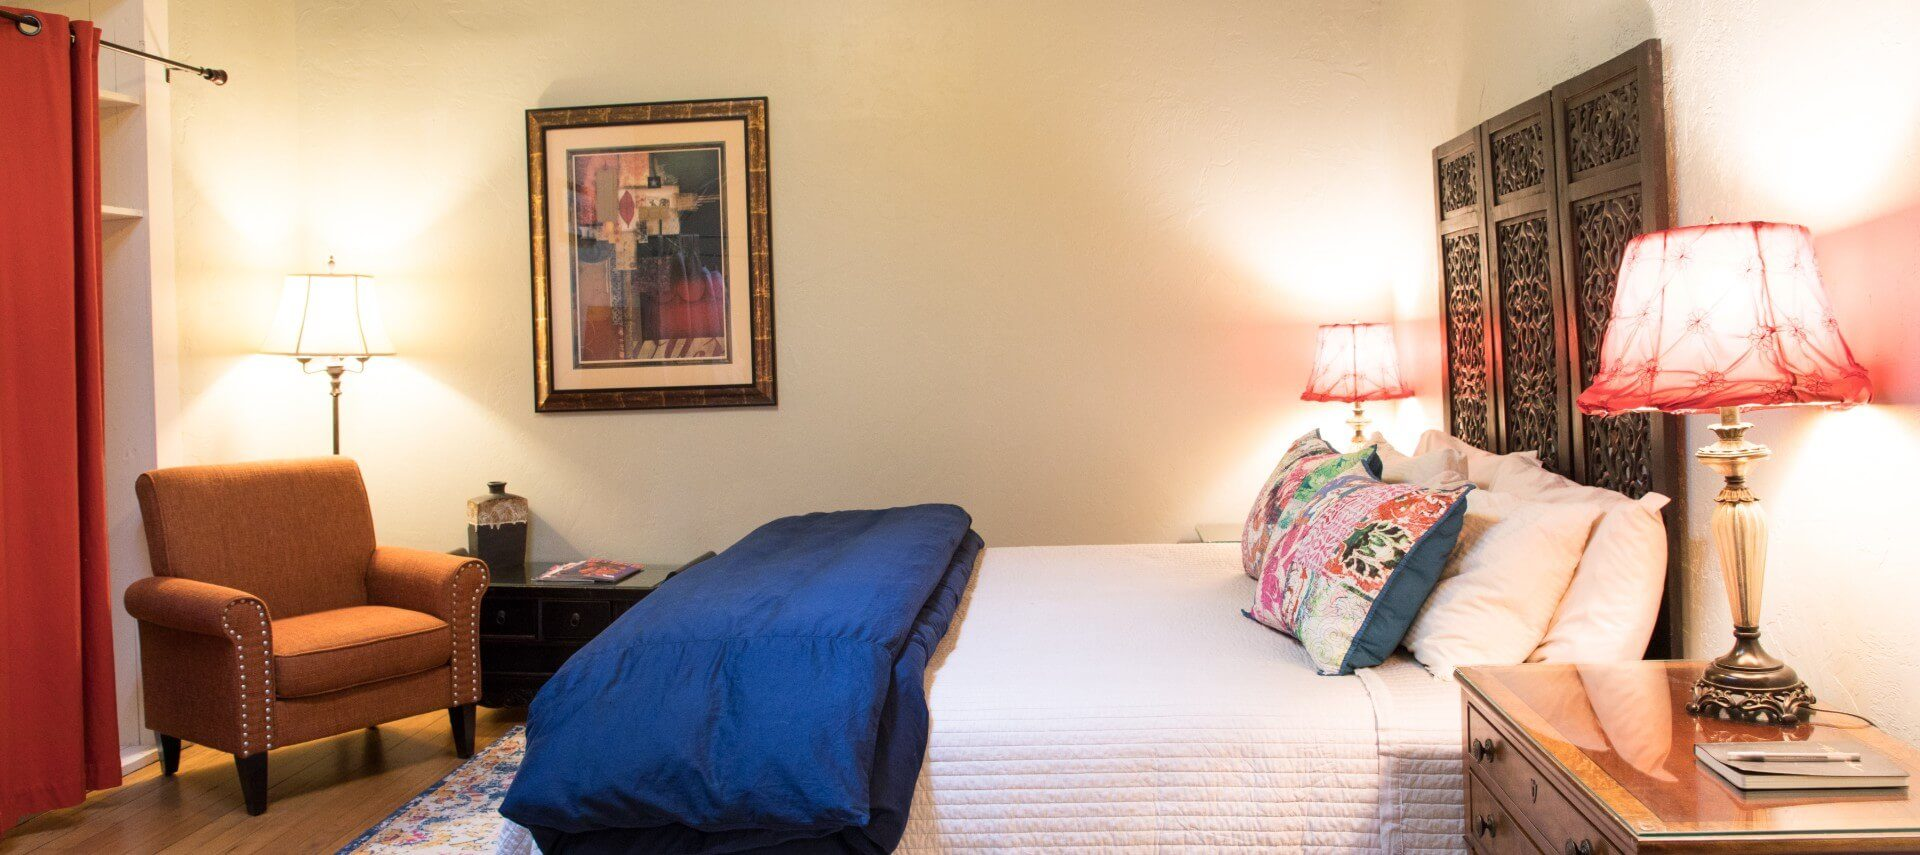 Queen bed and white and blue bedding decorative headboard, sitting chair, and closet with red curtain